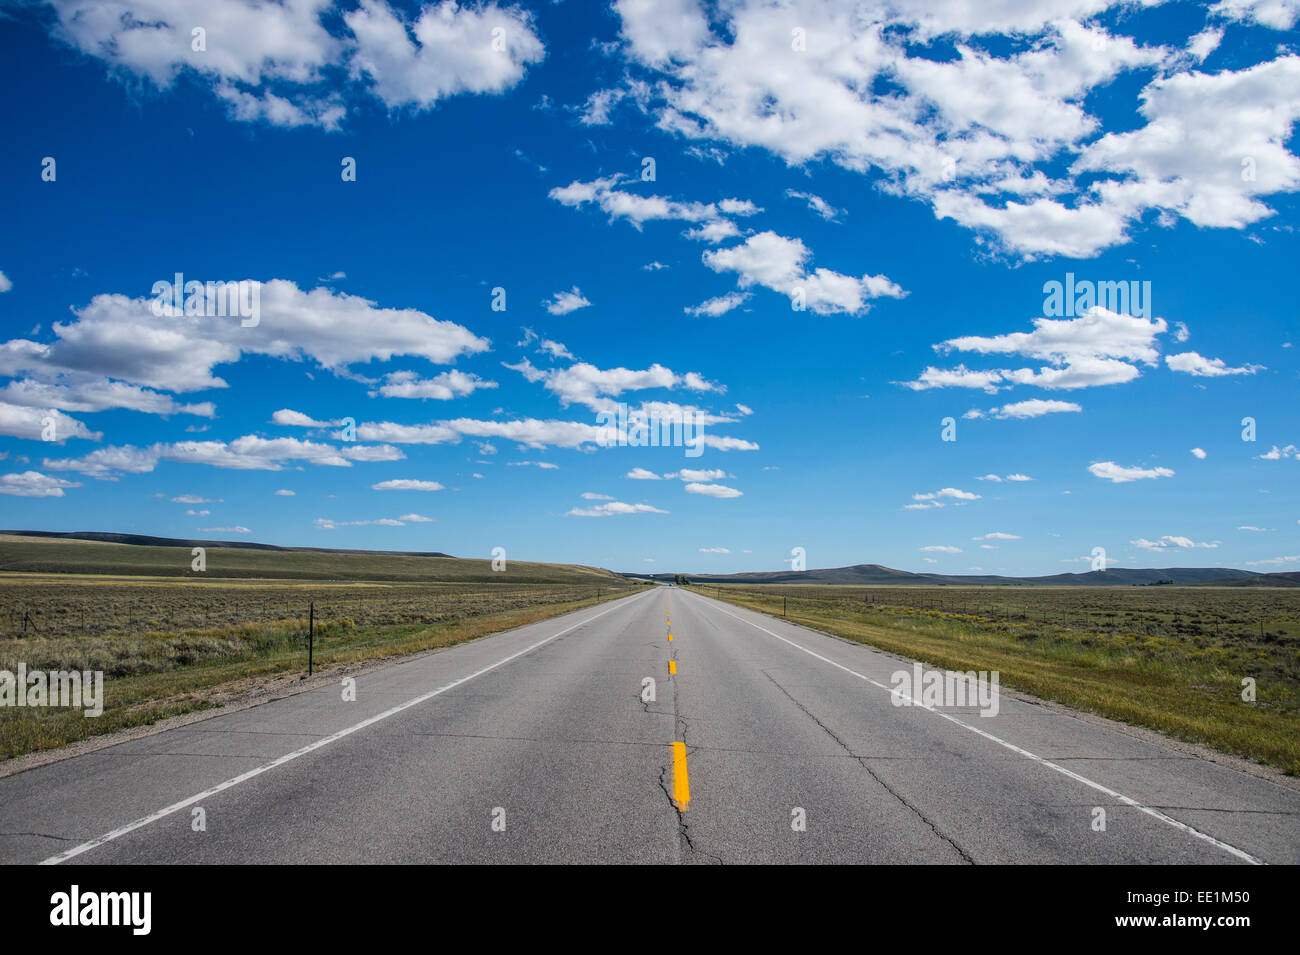 Long straight road in southern Wyoming, United States of America, North America - Stock Image